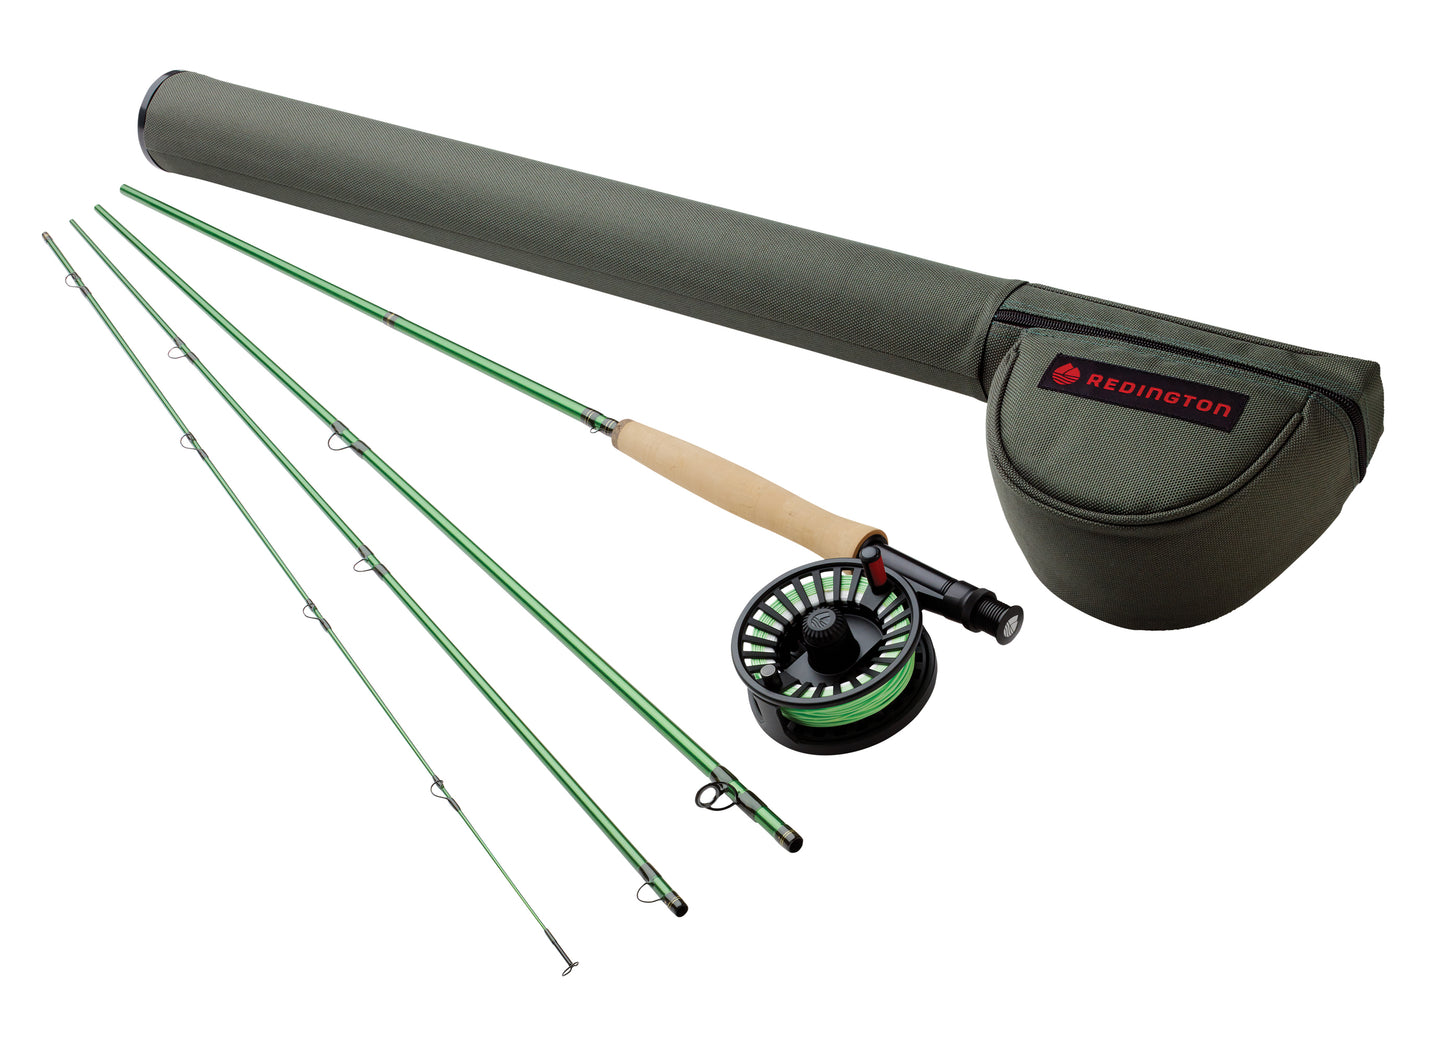 Redington VICE Fly Rod & Reel Combo w/ Case